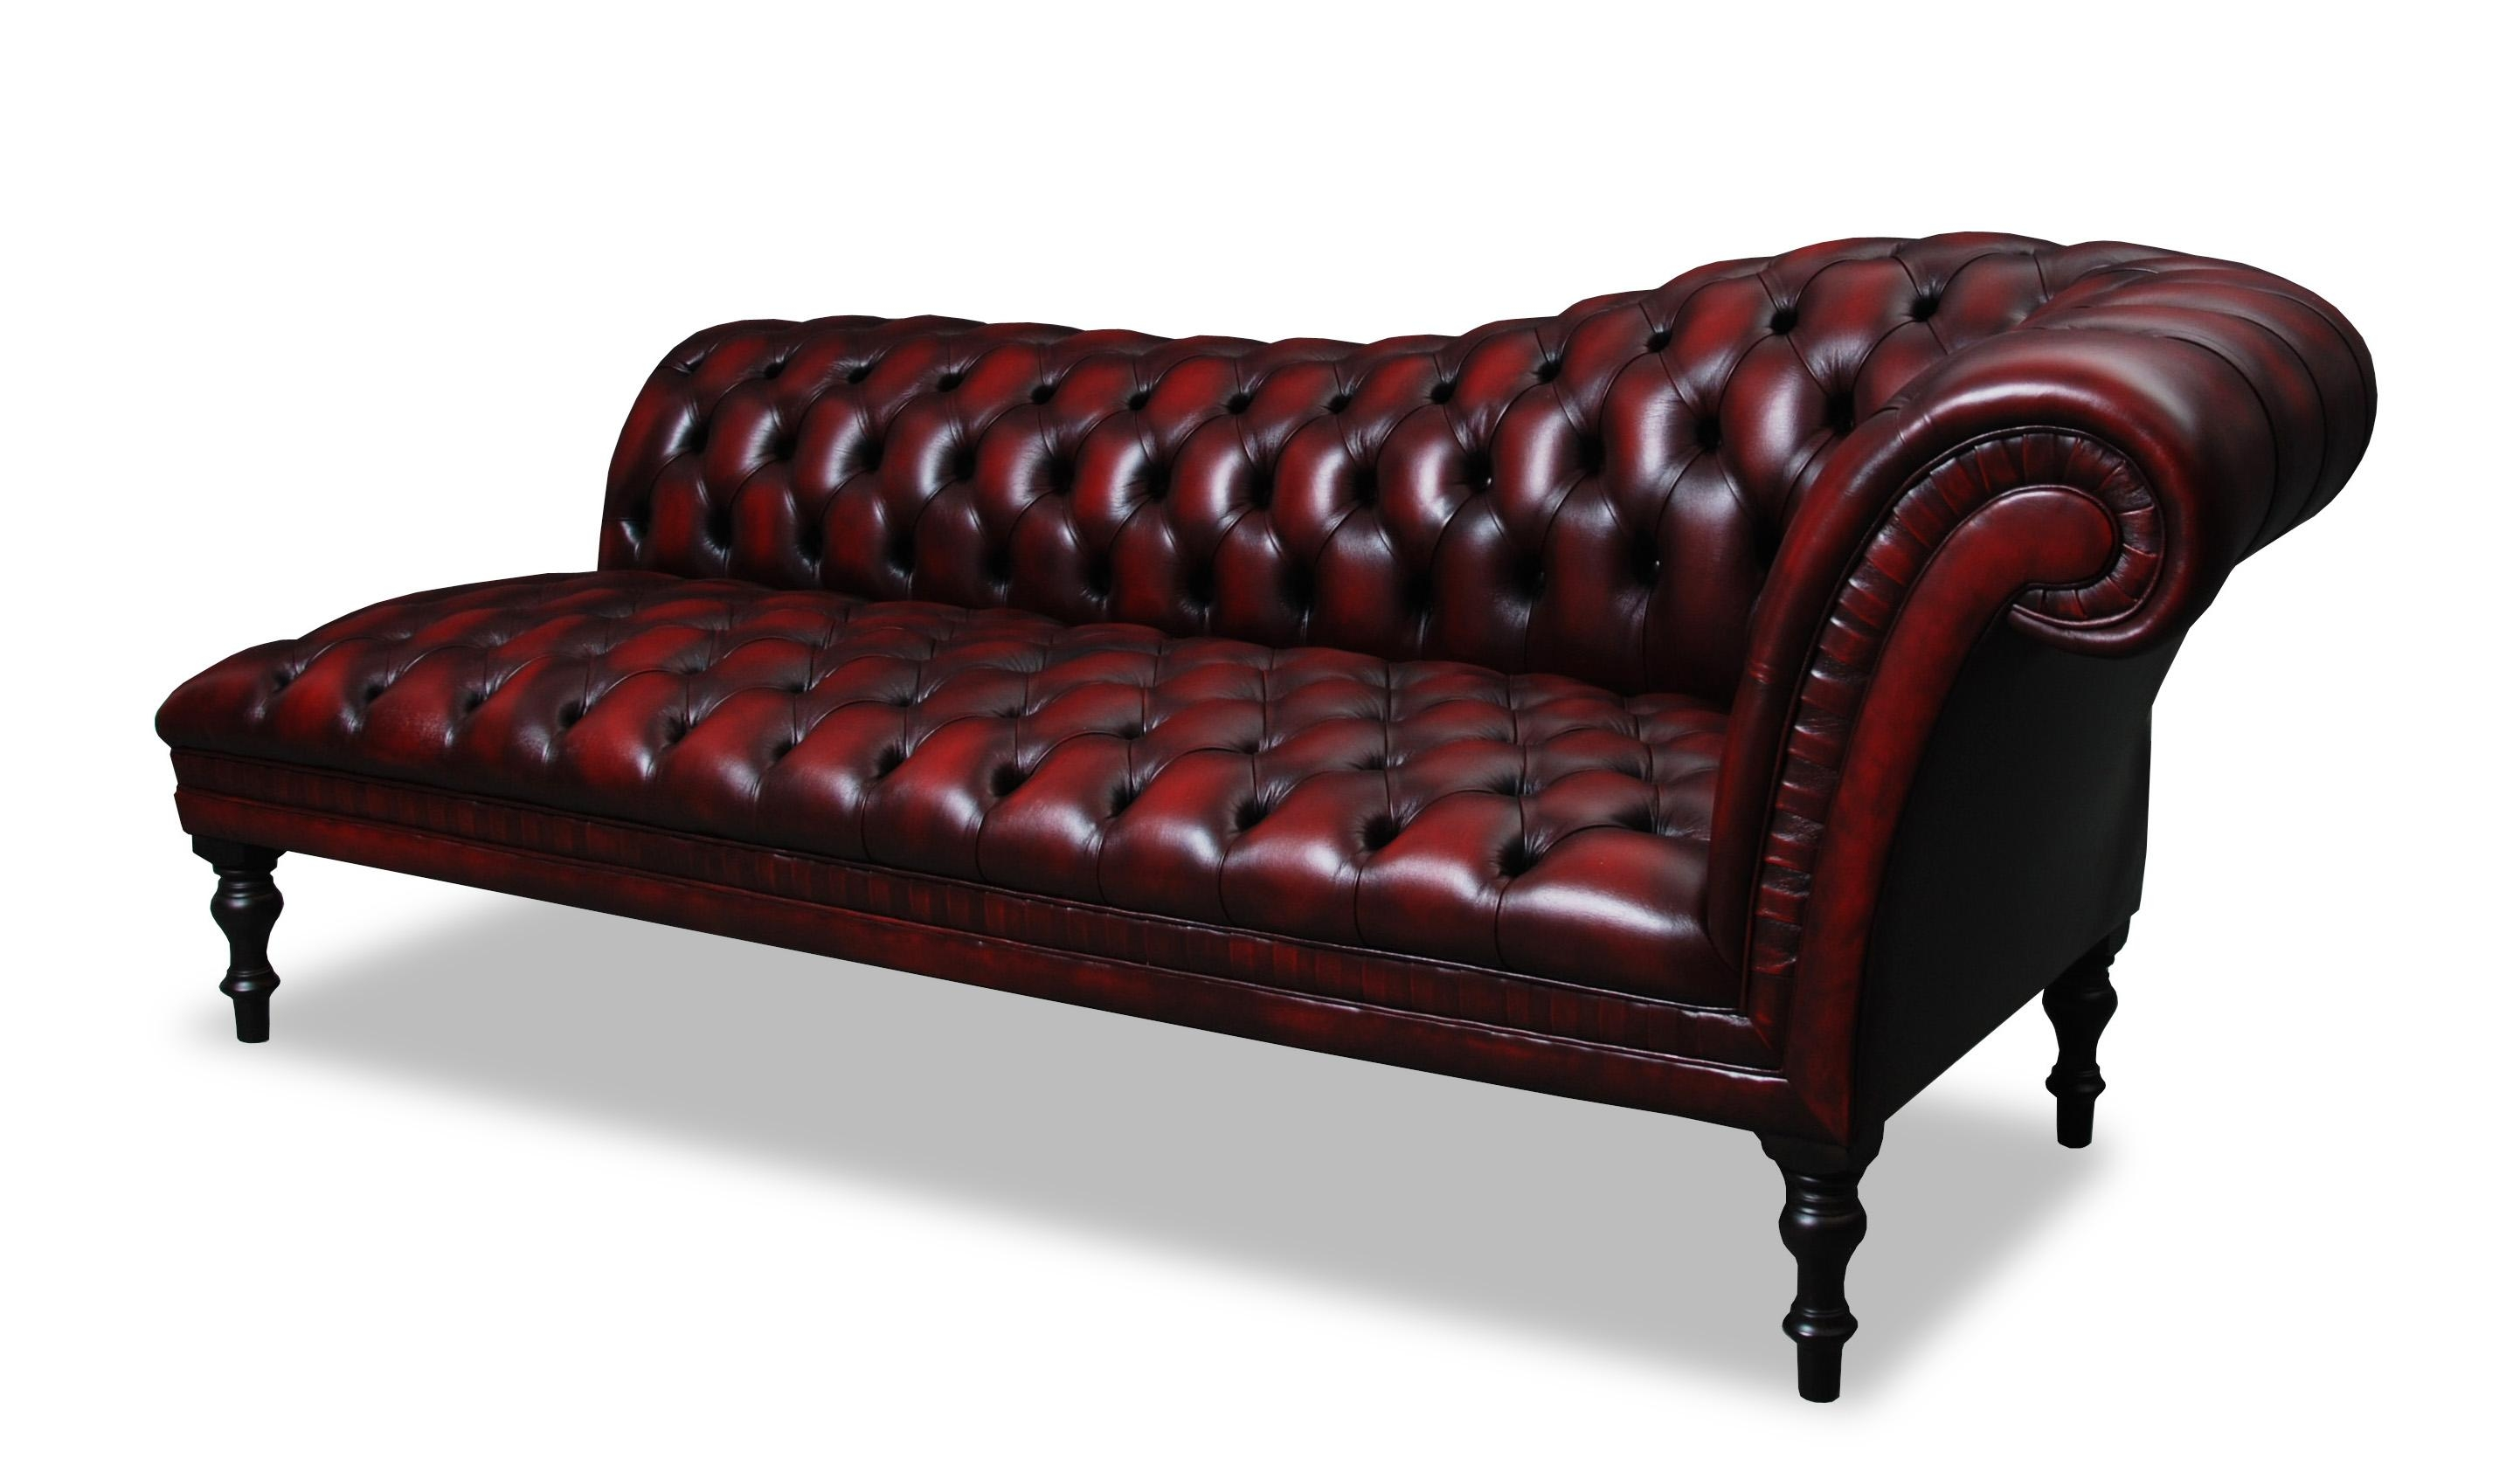 20 inspirations red chesterfield sofas sofa ideas for Chaise chesterfield